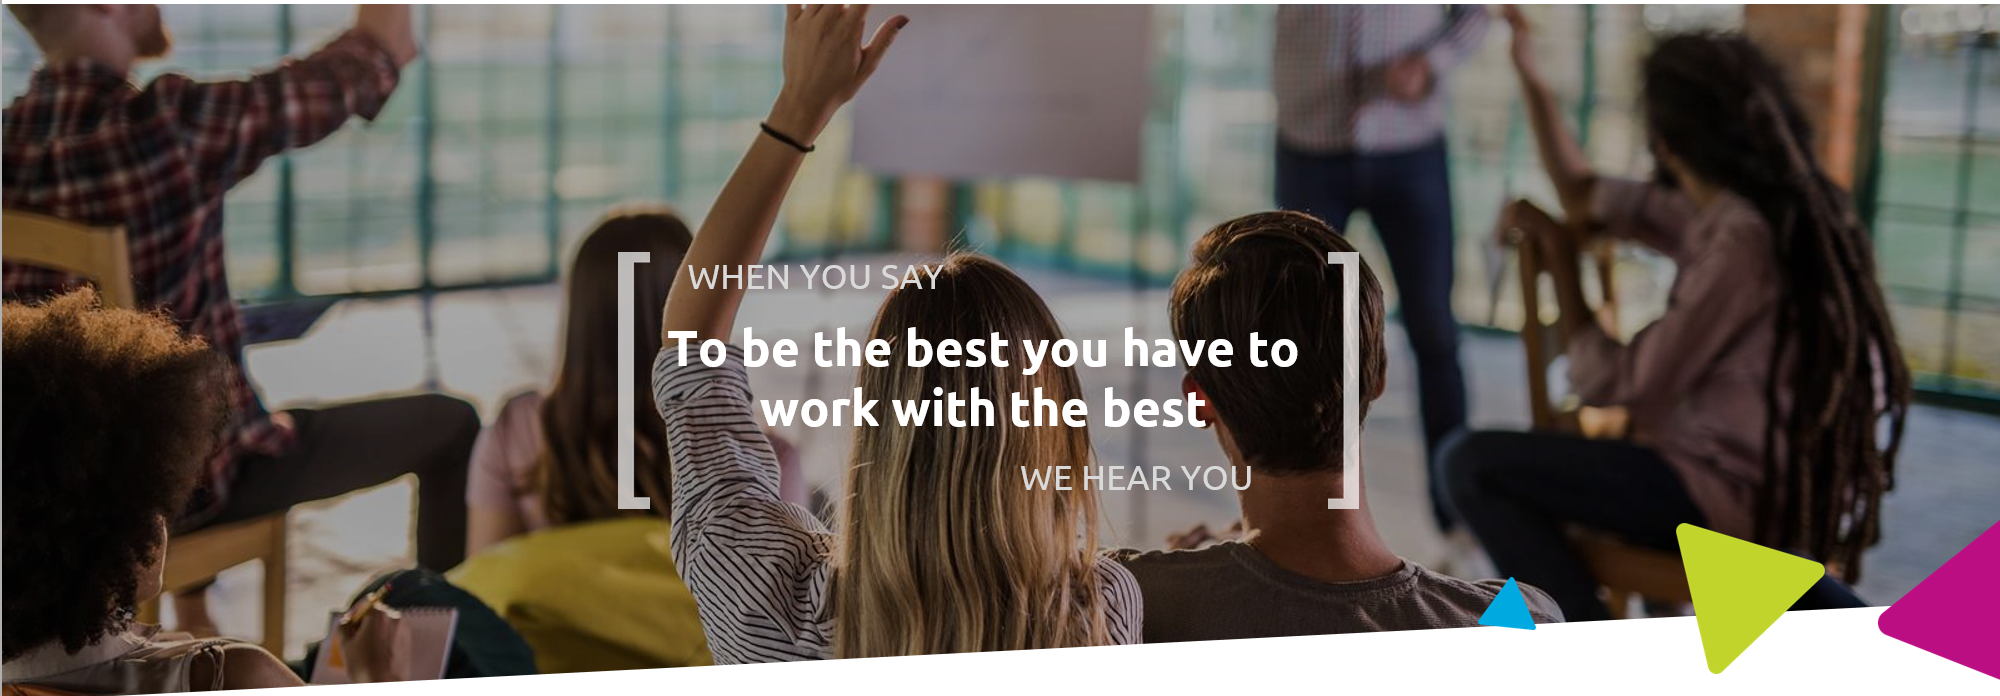 When you say to be the best you have to work with the best, we hear you